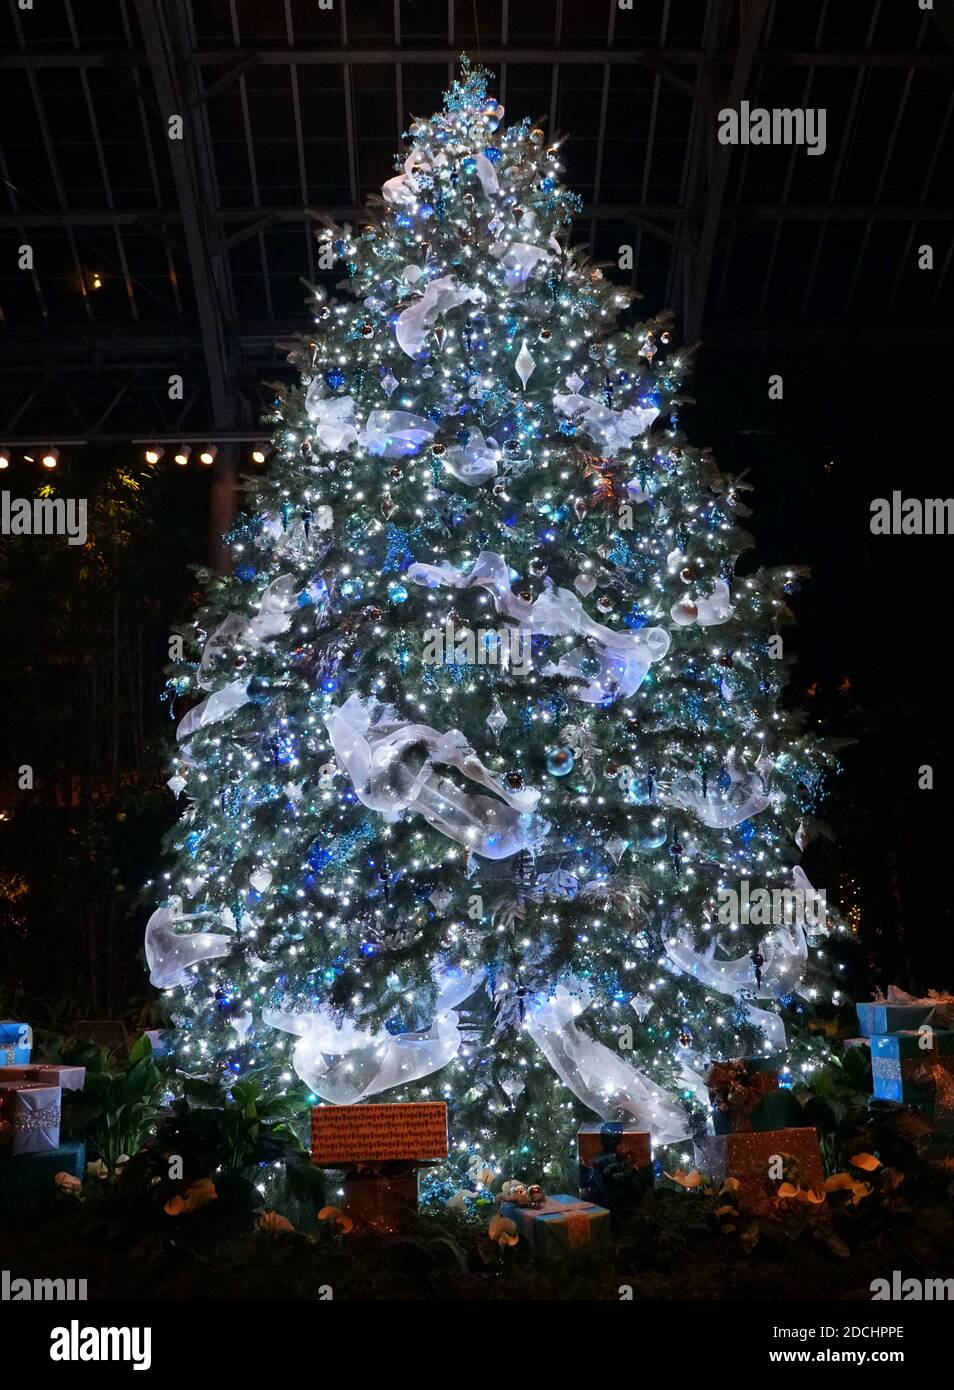 A Beautiful Christmas Tree Decorated With Blue And Silver Ornaments Stock Photo Alamy